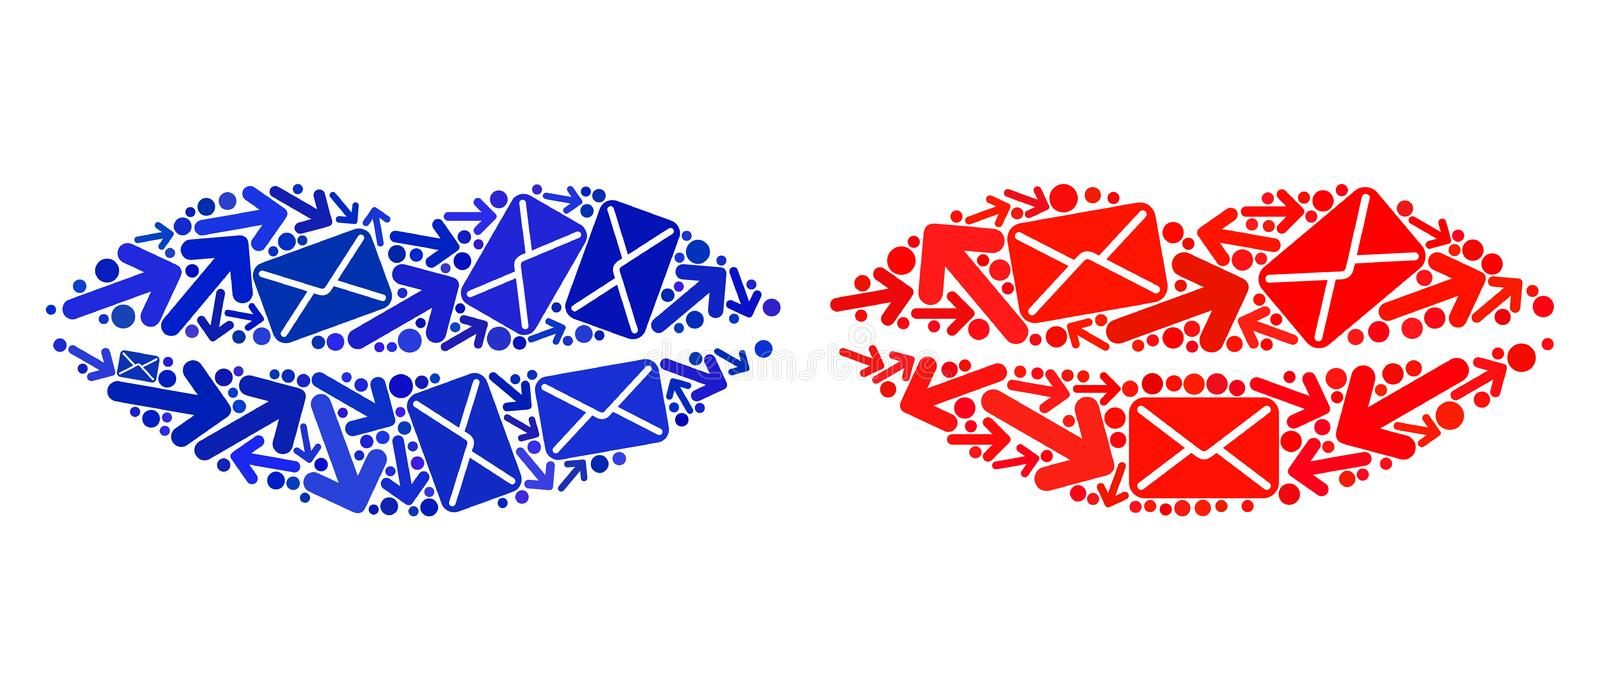 Post Movement Collage Smile Lips Icons royalty free illustration